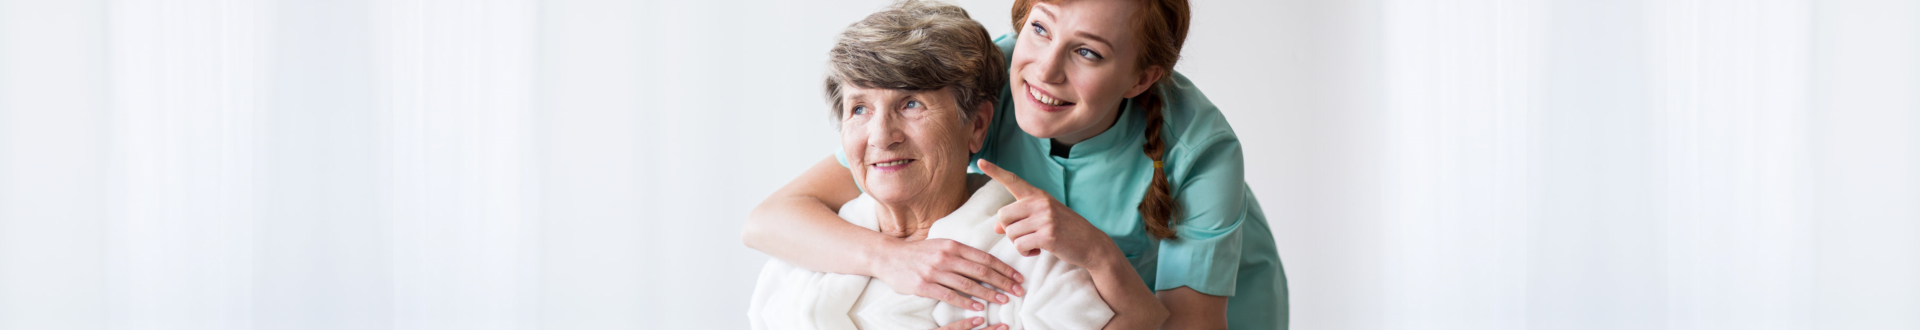 caregiver pointing at something while senior woman looking